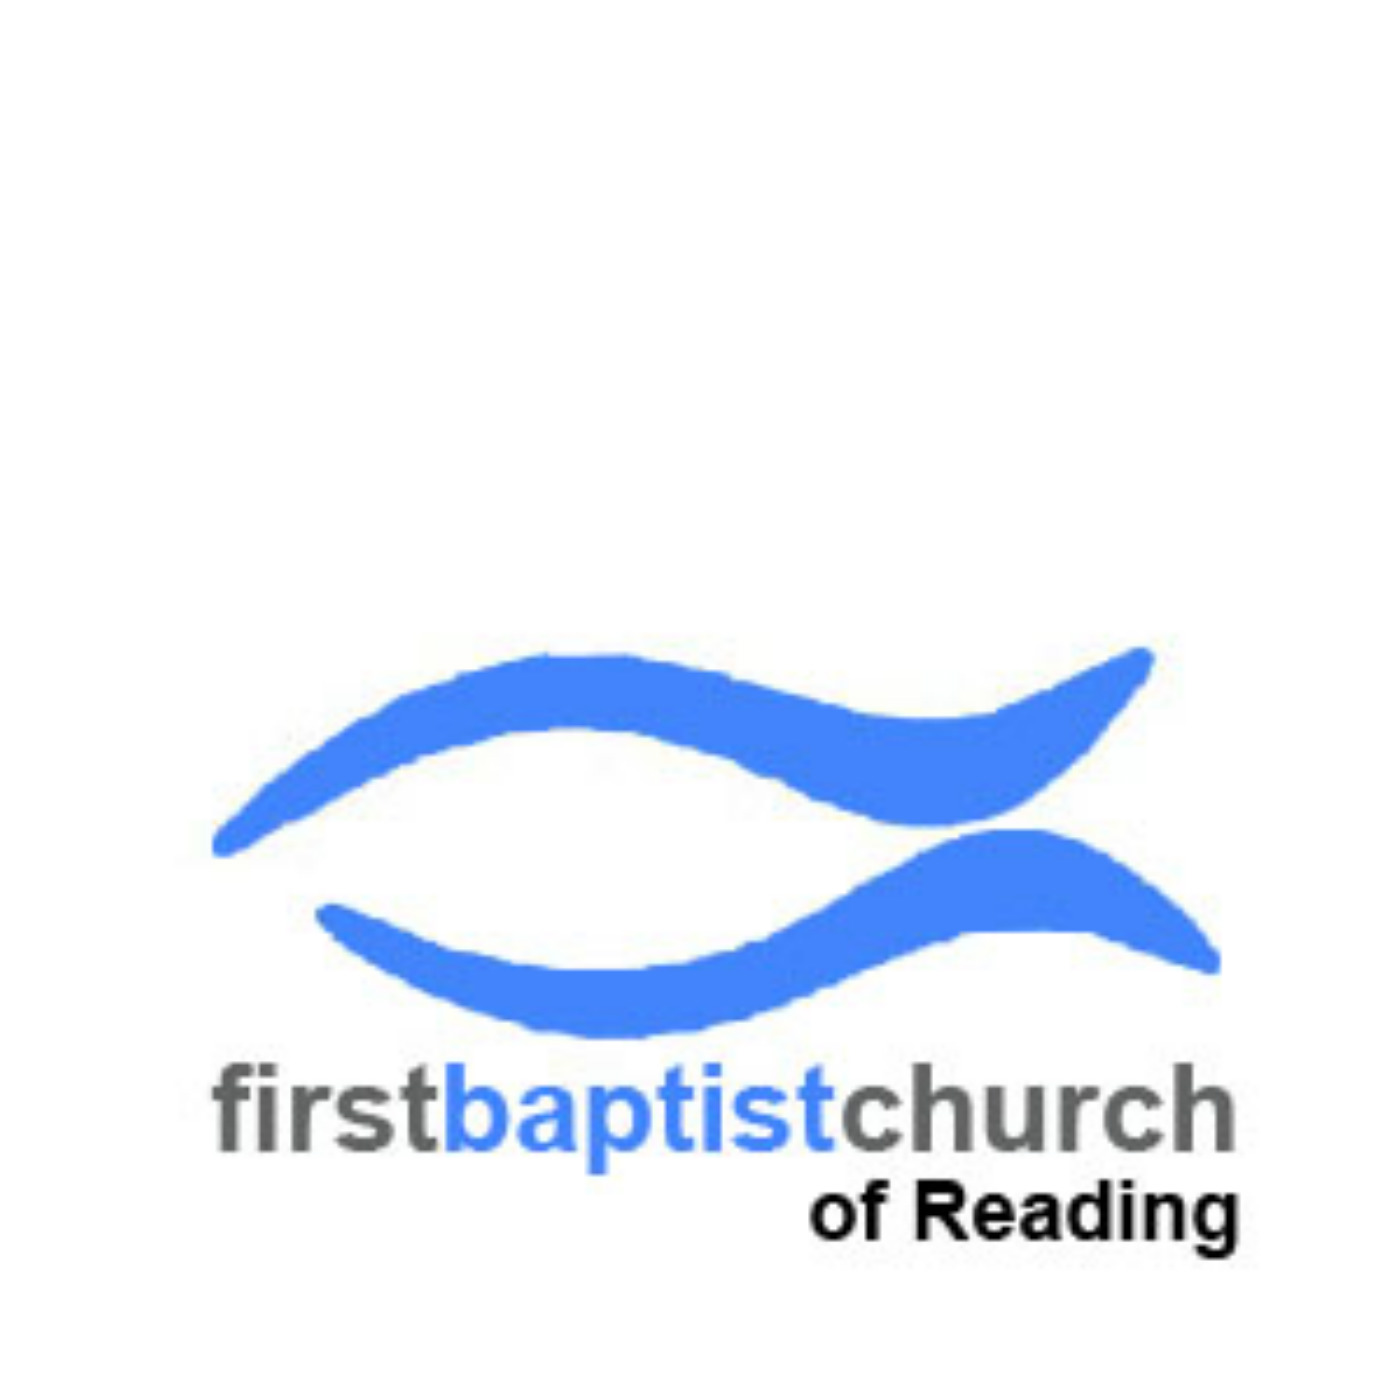 First Baptist Church of Reading